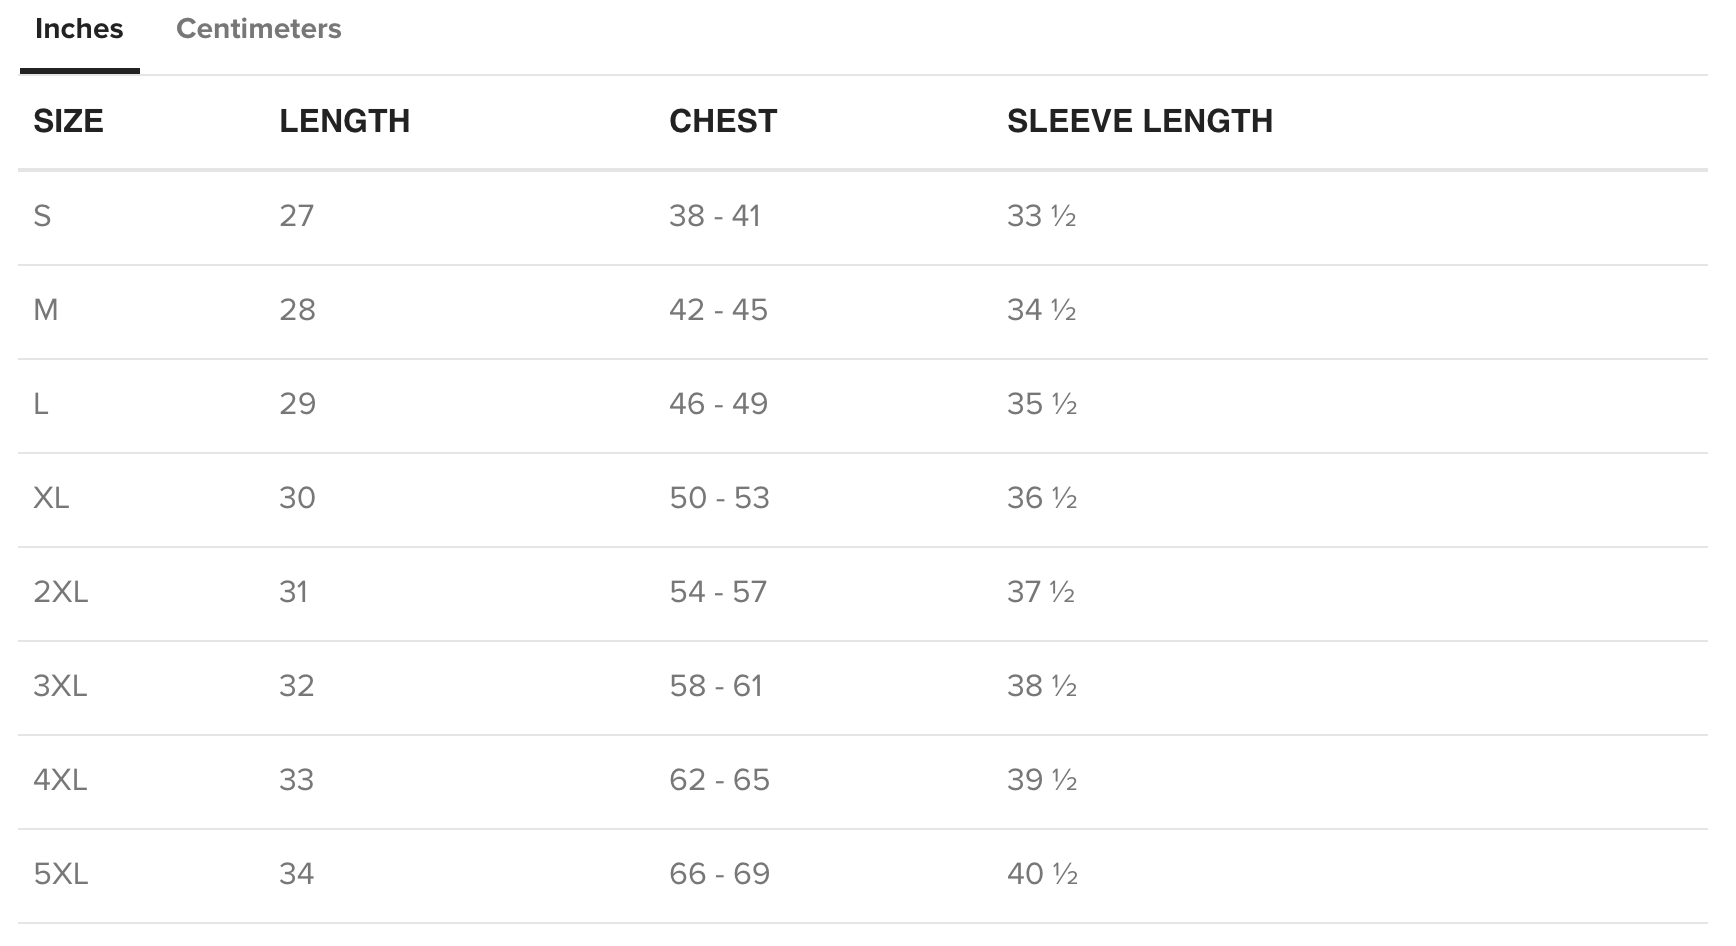 US Sweatshirt Size Chart in inches